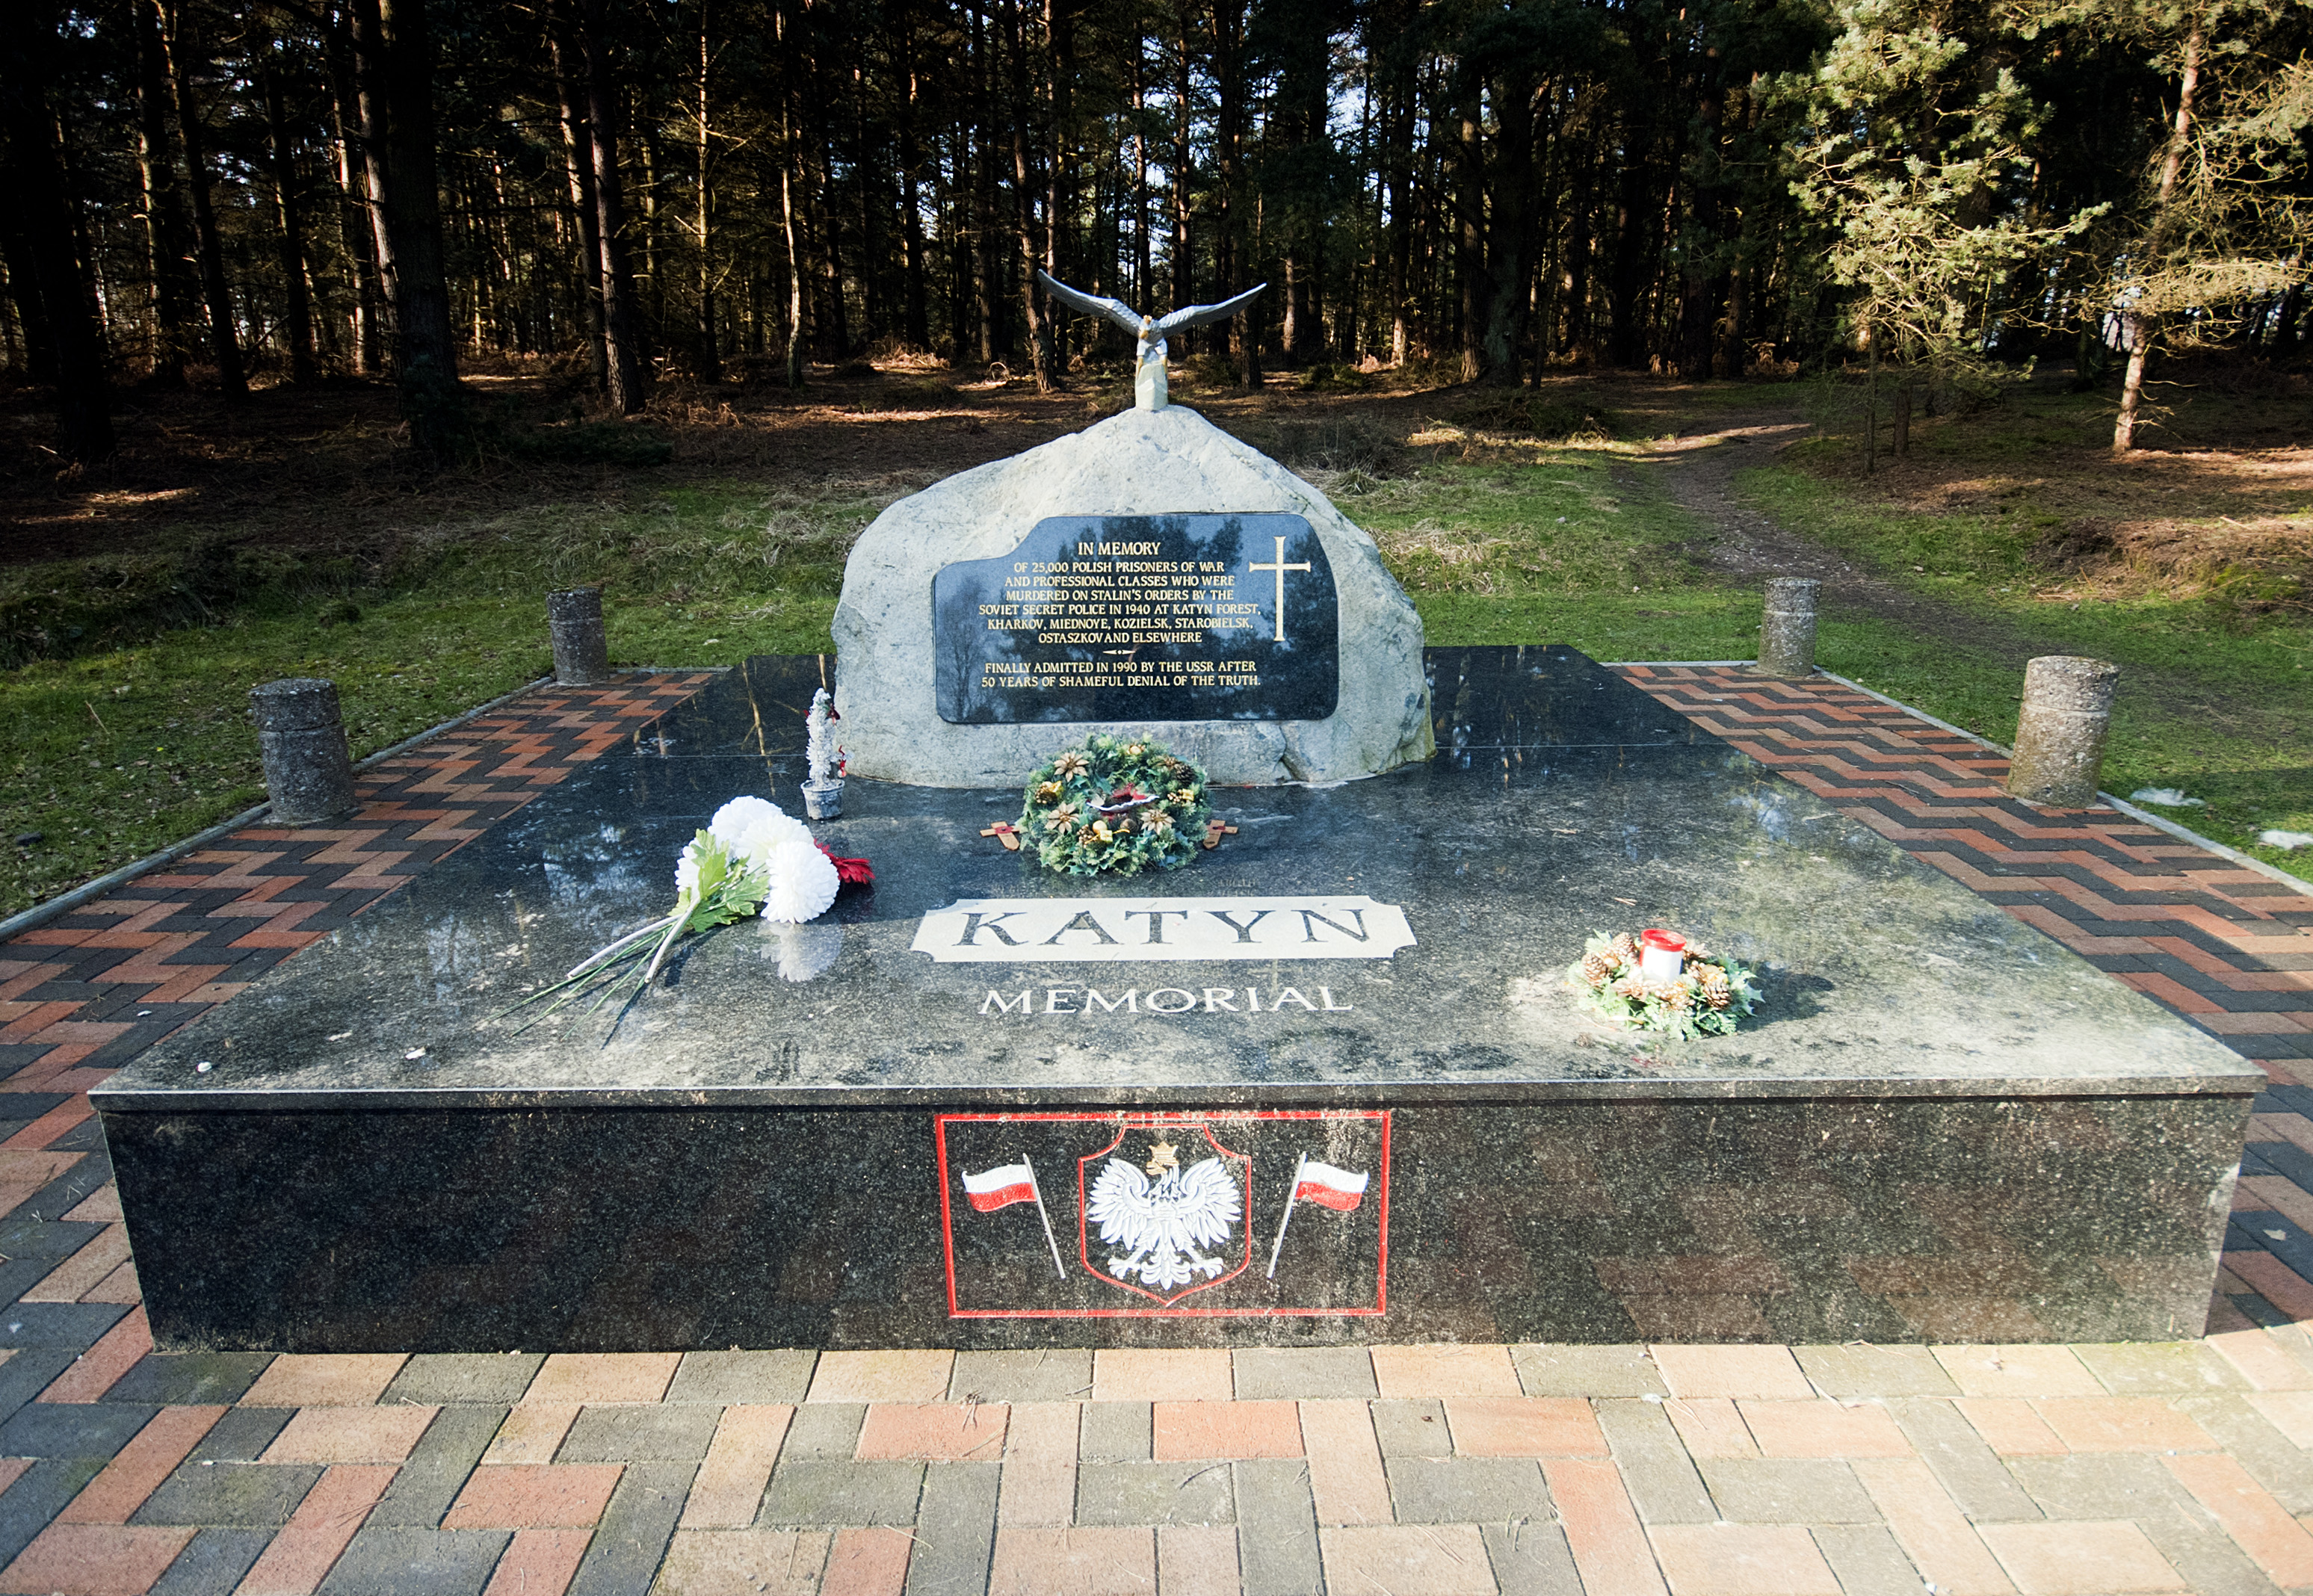 The Katyn Memorial at Cannock Chase.